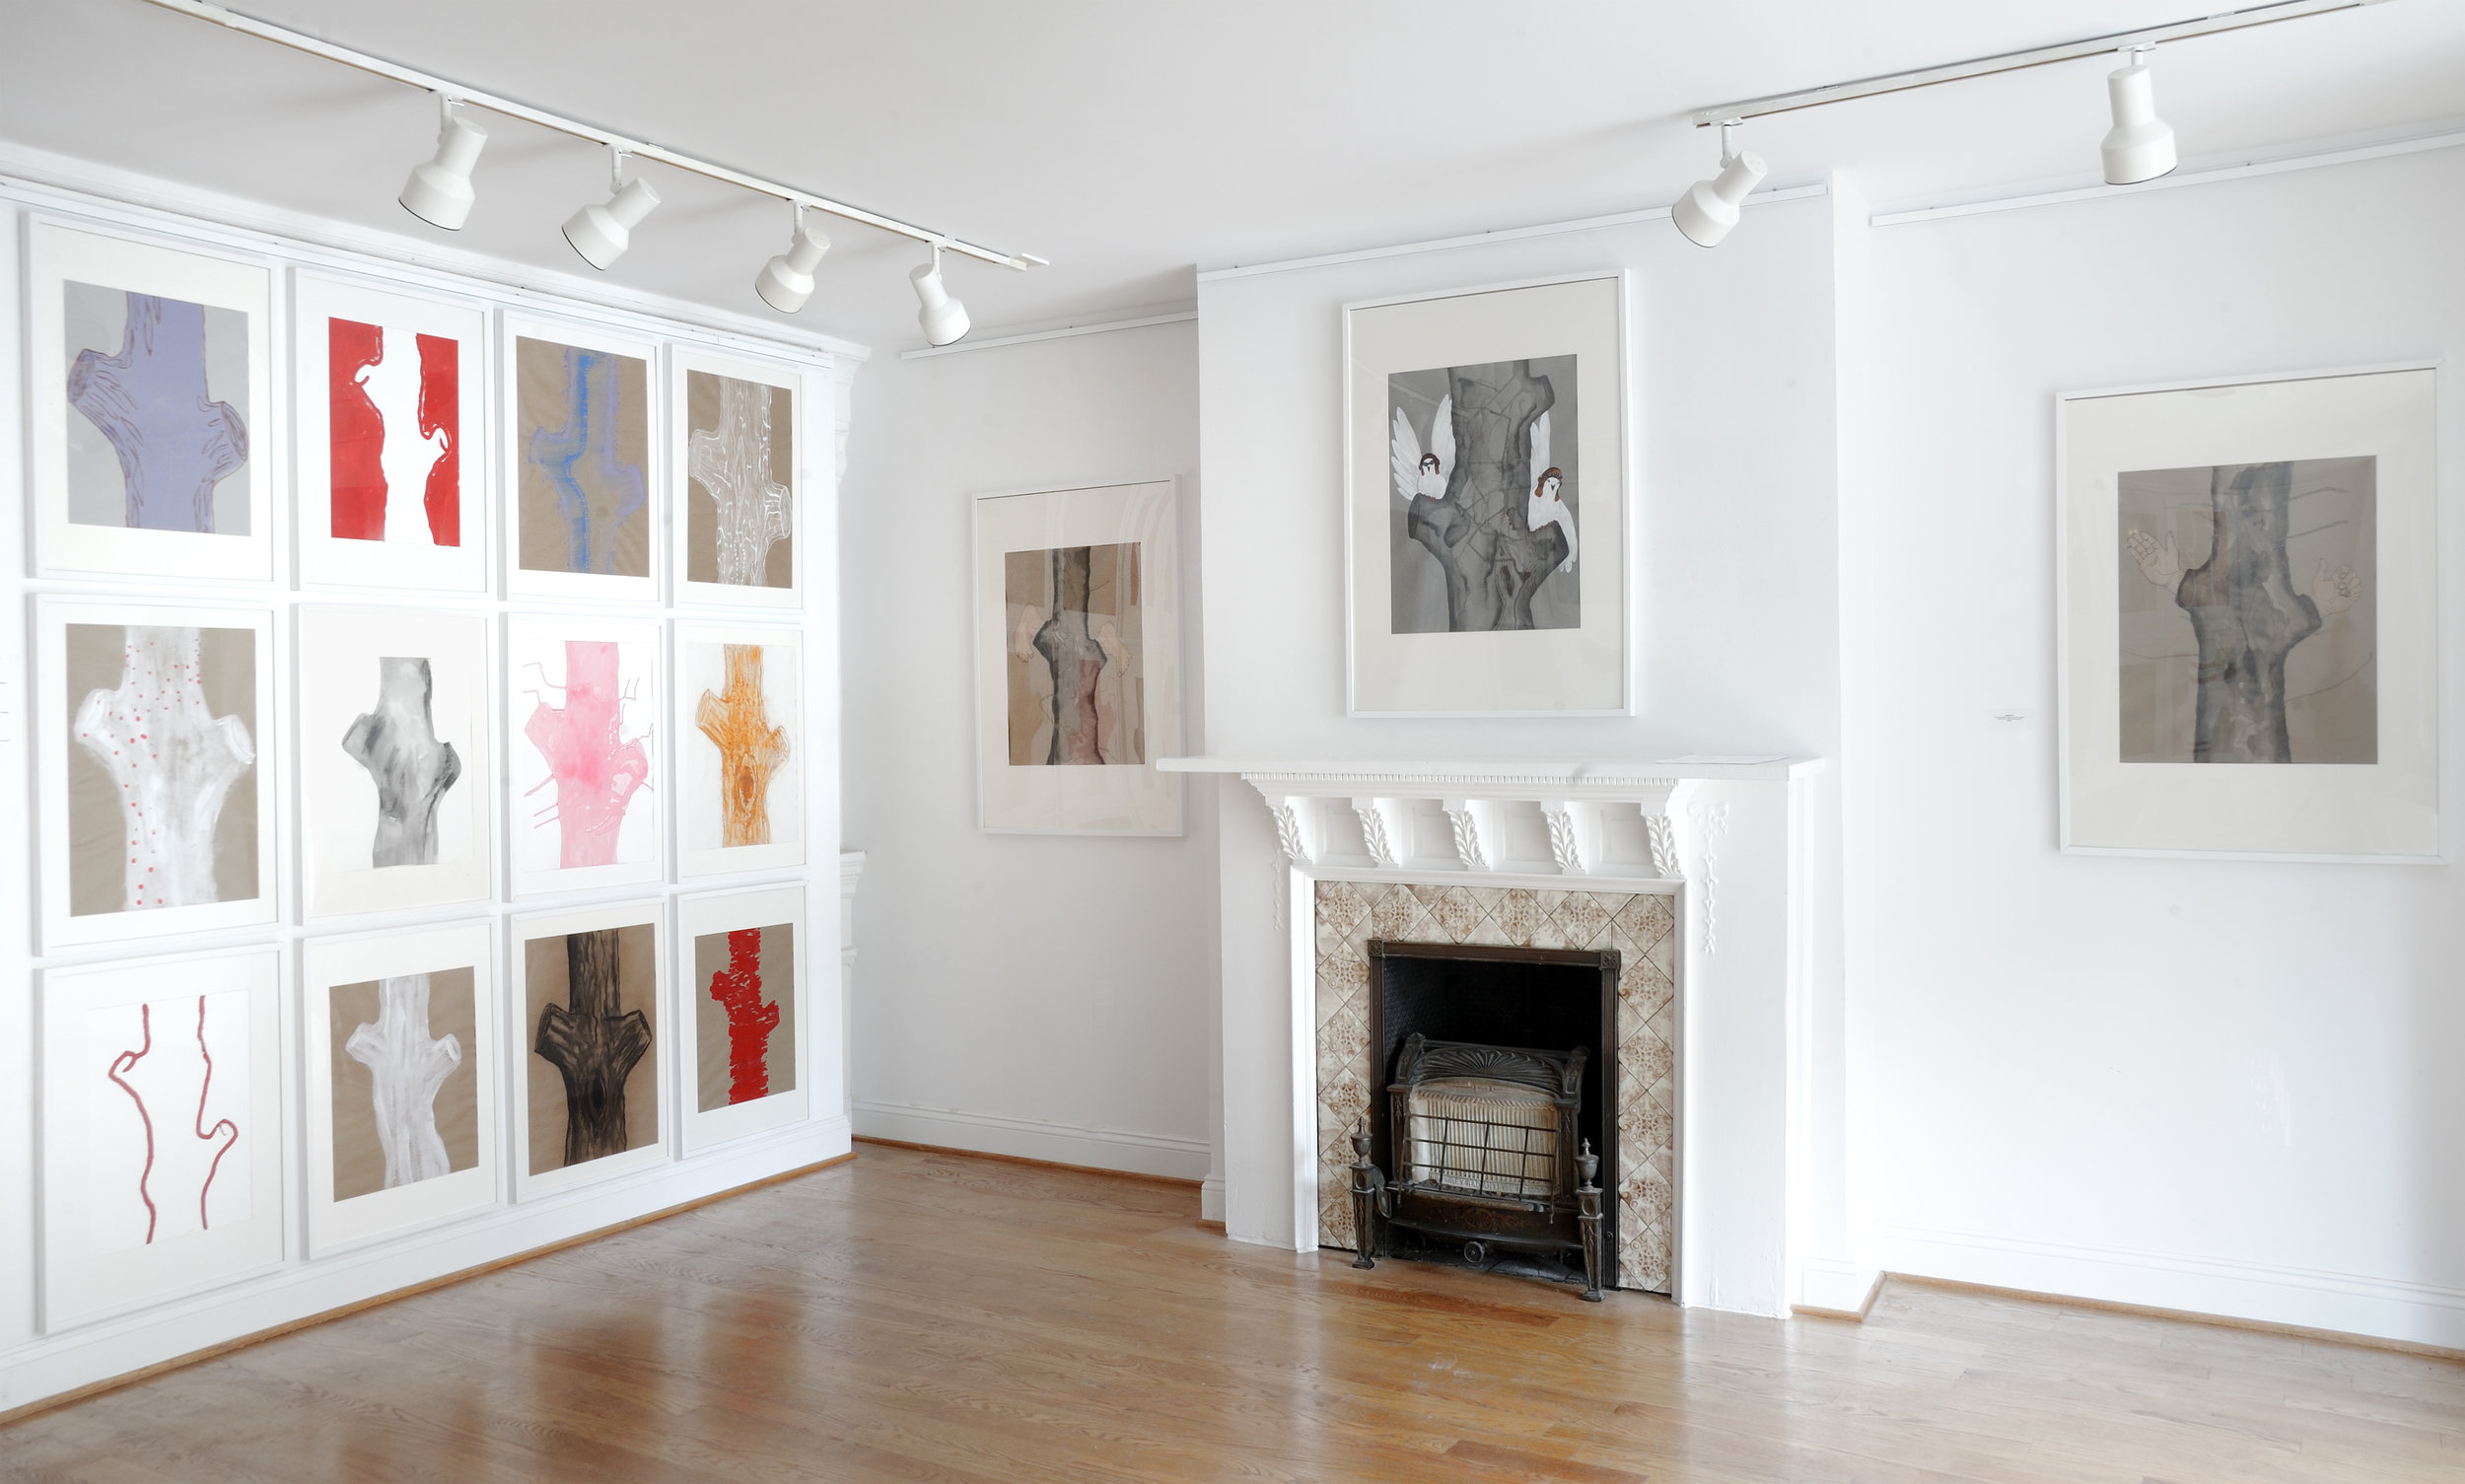 Installation Shot September 2014 Show - # 5.jpg